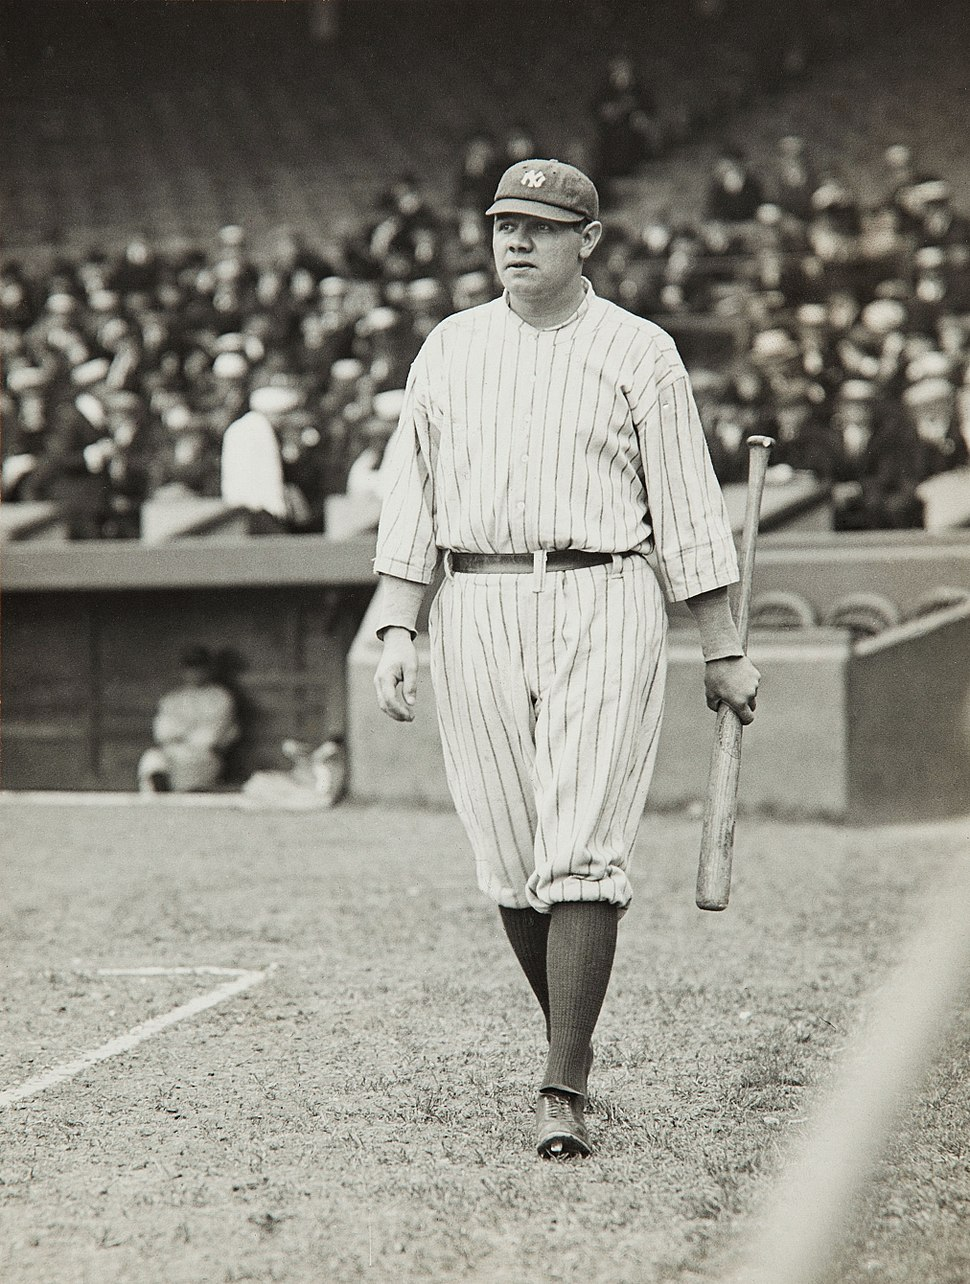 Babe Ruth by Paul Thompson, 1920